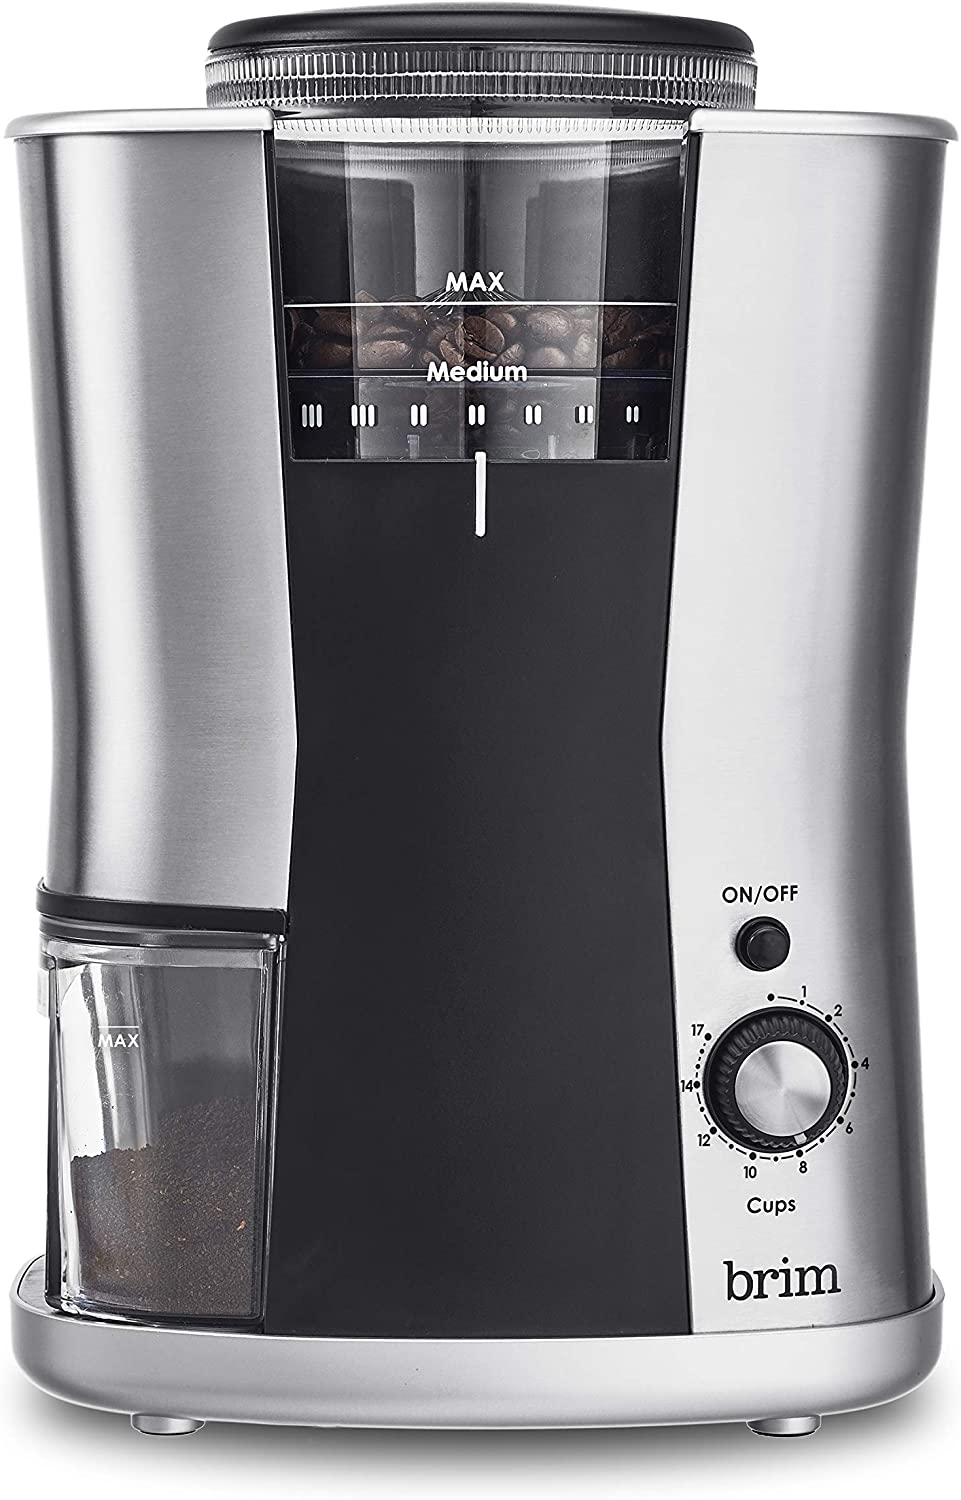 Brim Conical Burr Coffee Grinder $36.05 Coupon